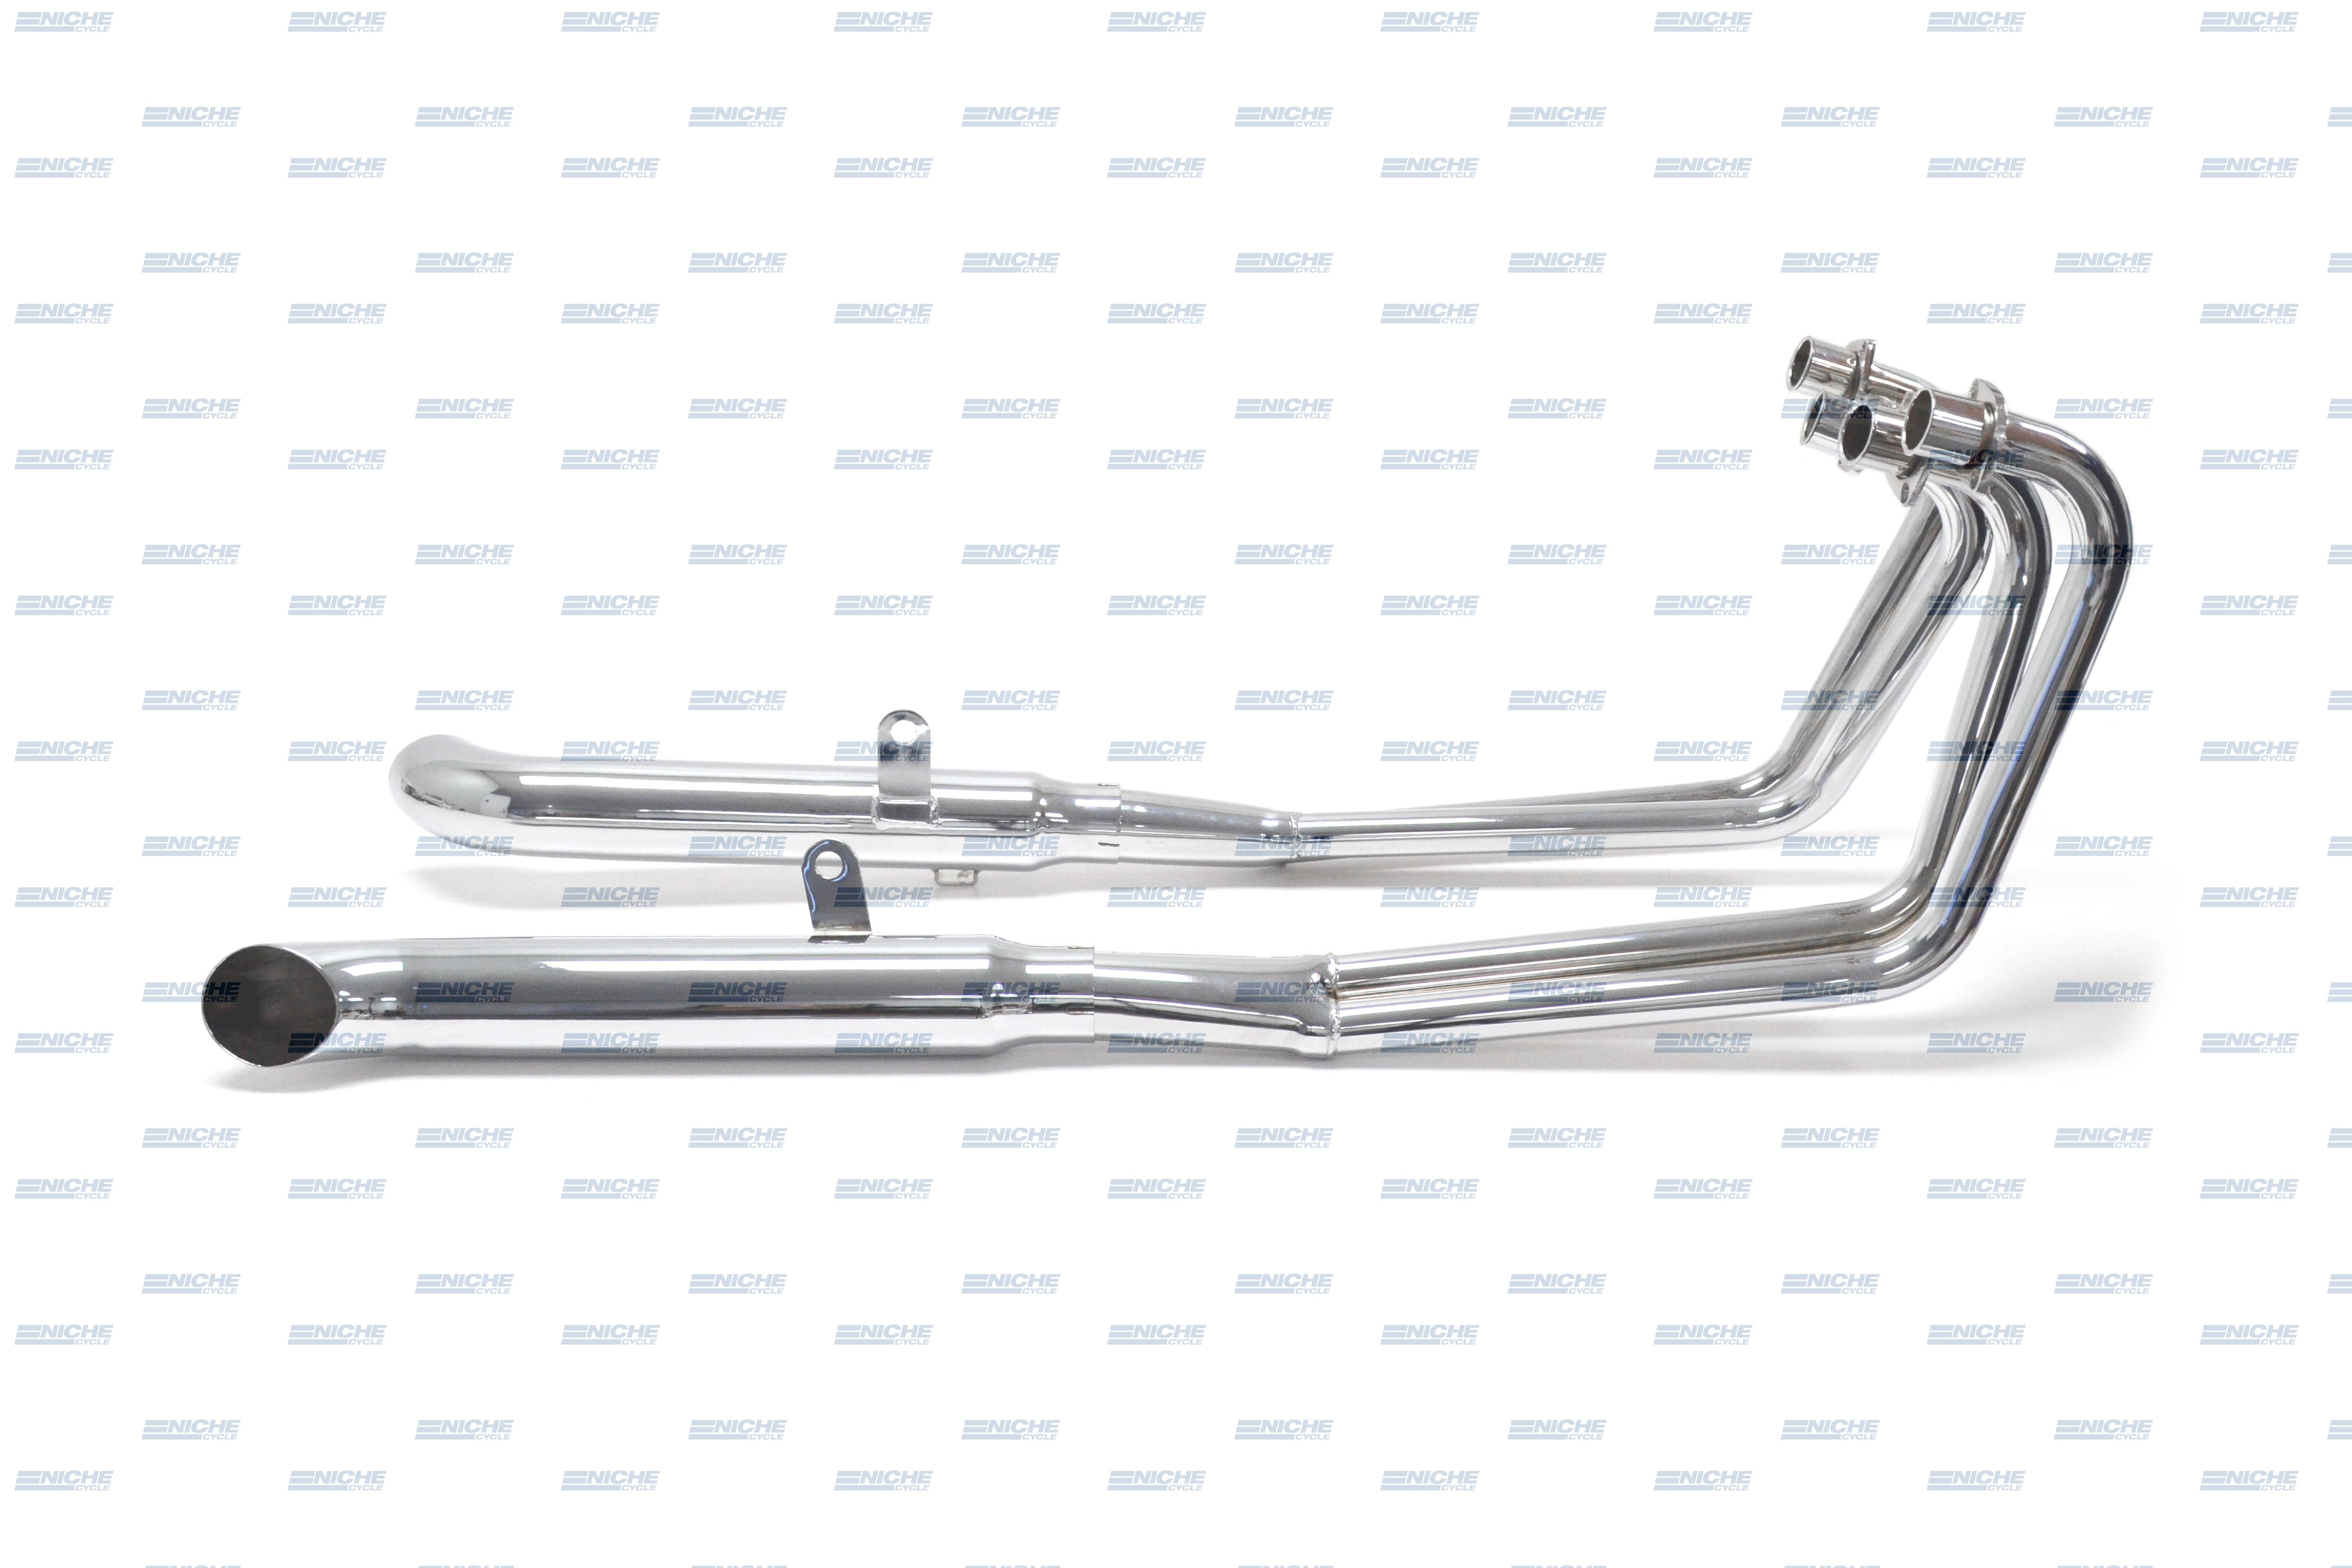 Suzuki GS650 81-83 4-Into-2 Chrome Turnout Exhaust System 003-0808